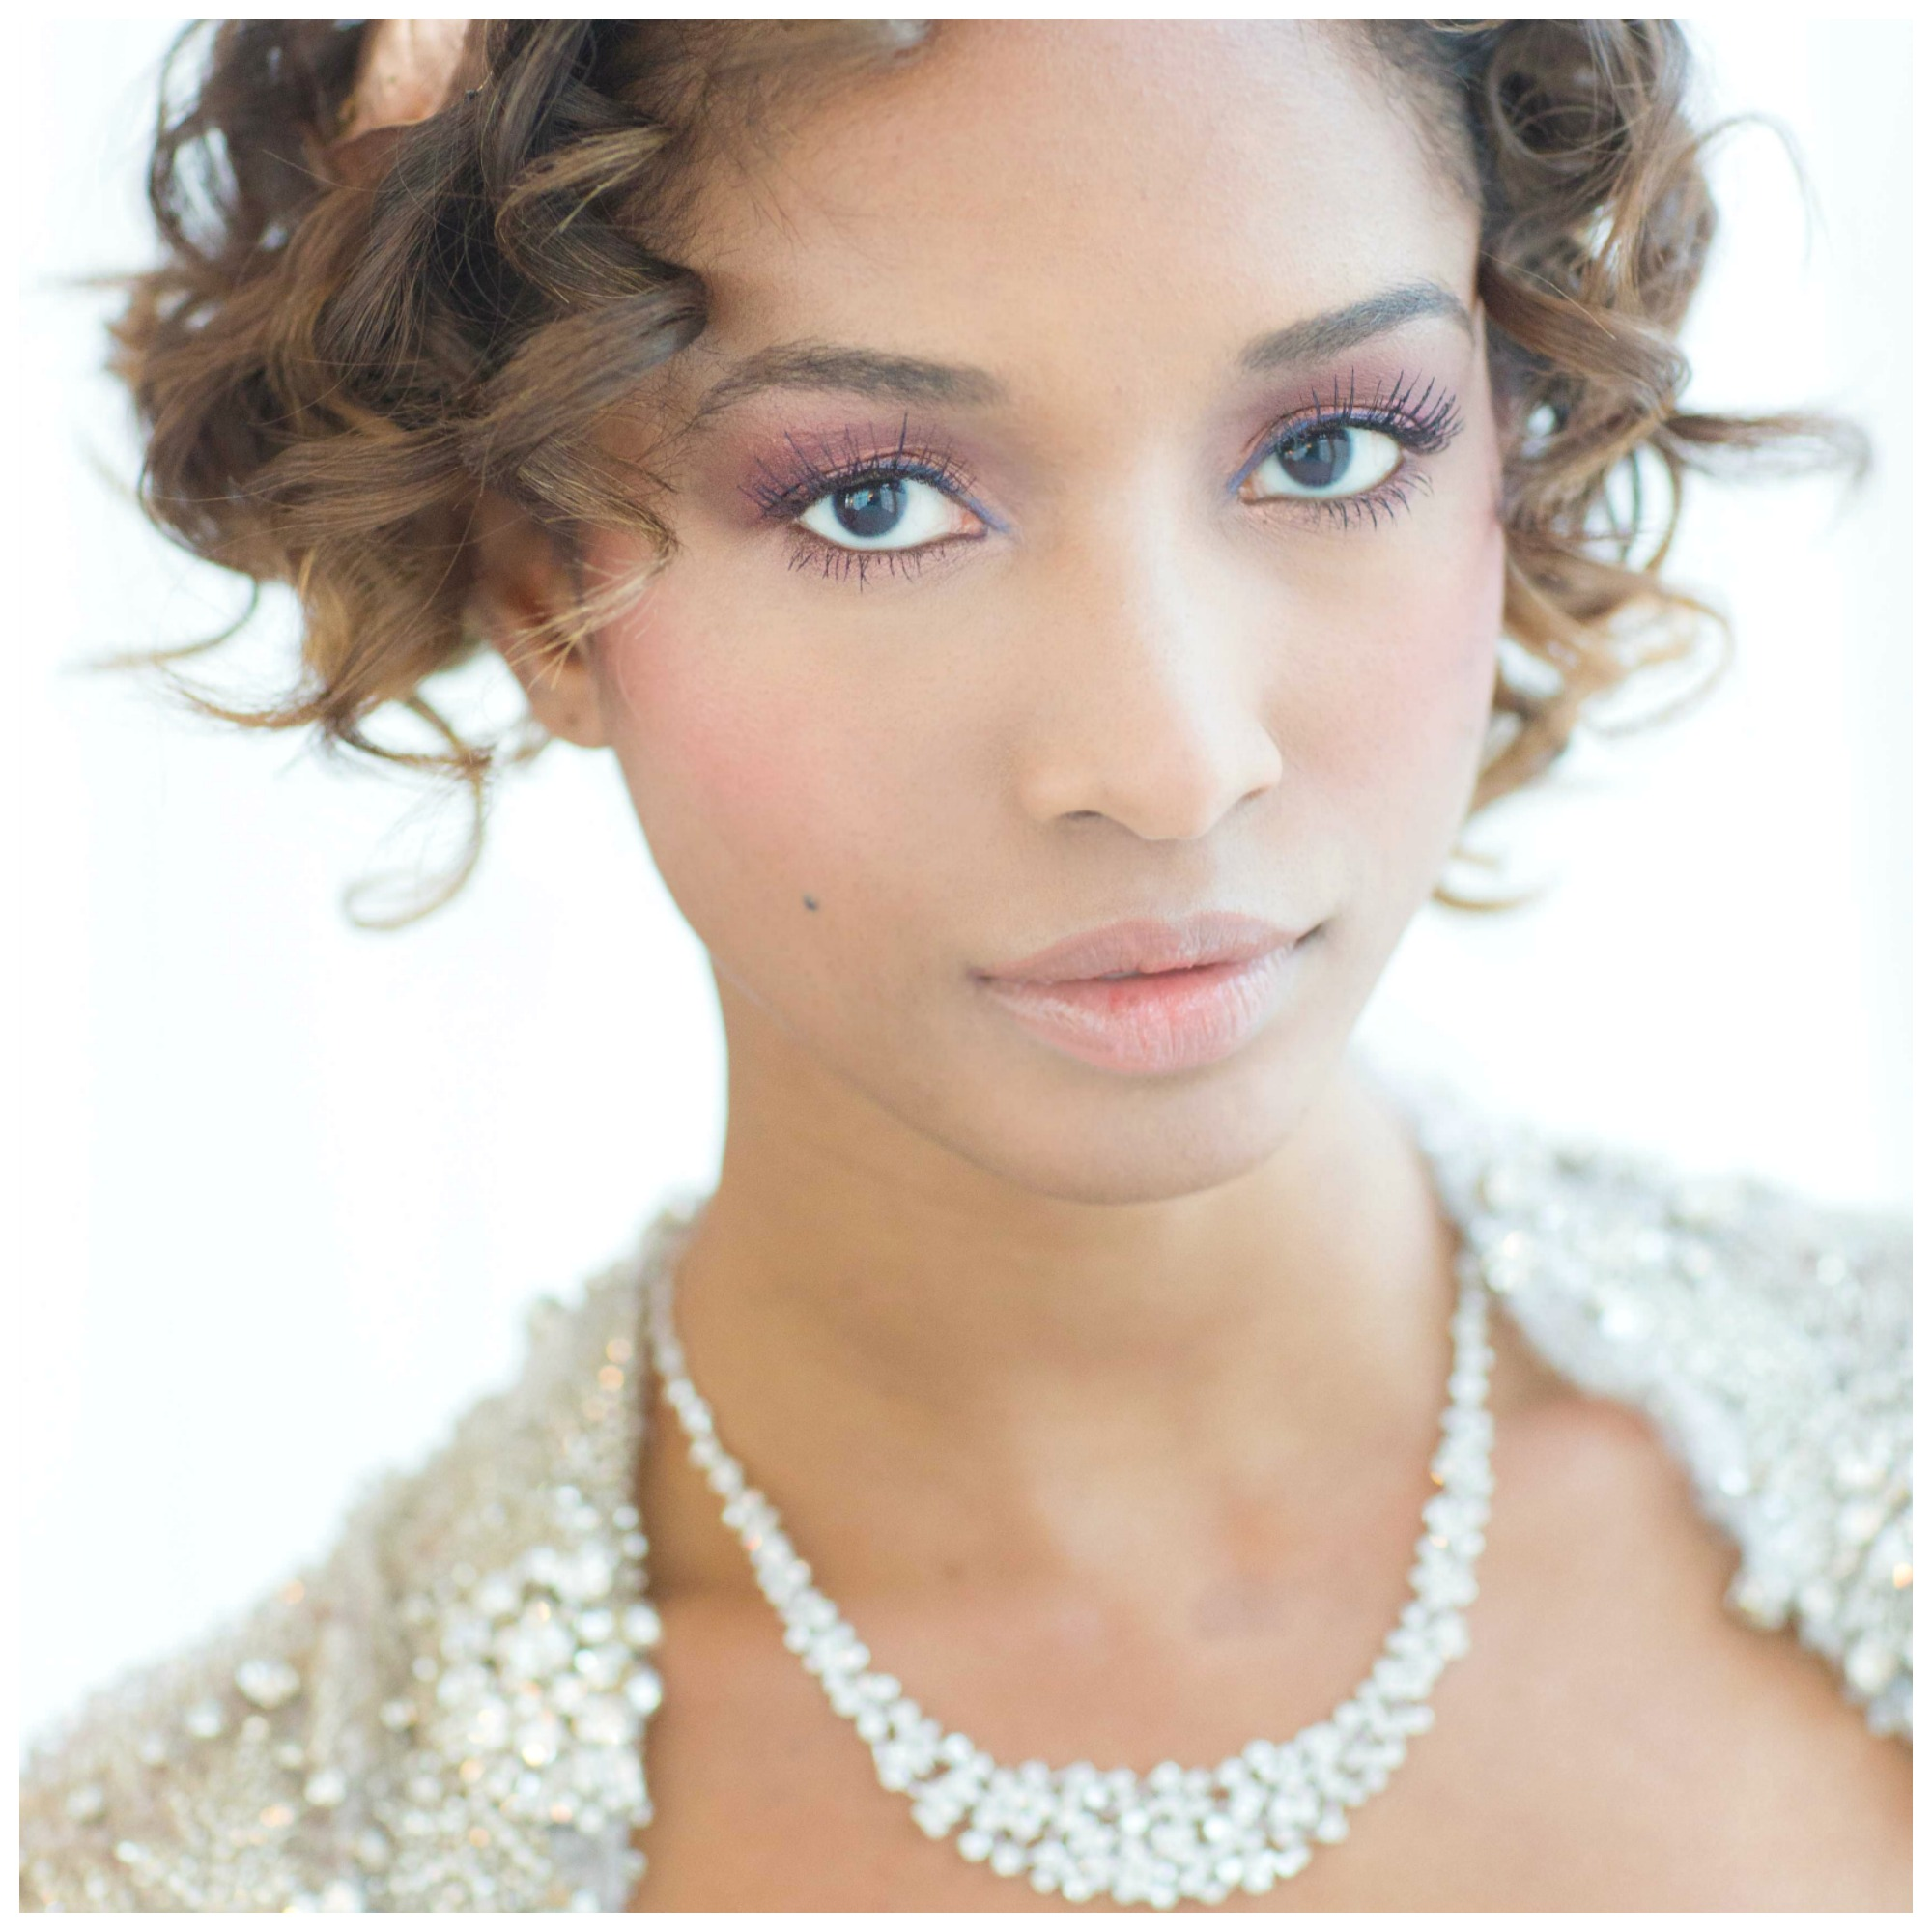 Bride in sparkling wedding gown, diamond necklace, and soft romantic makeup